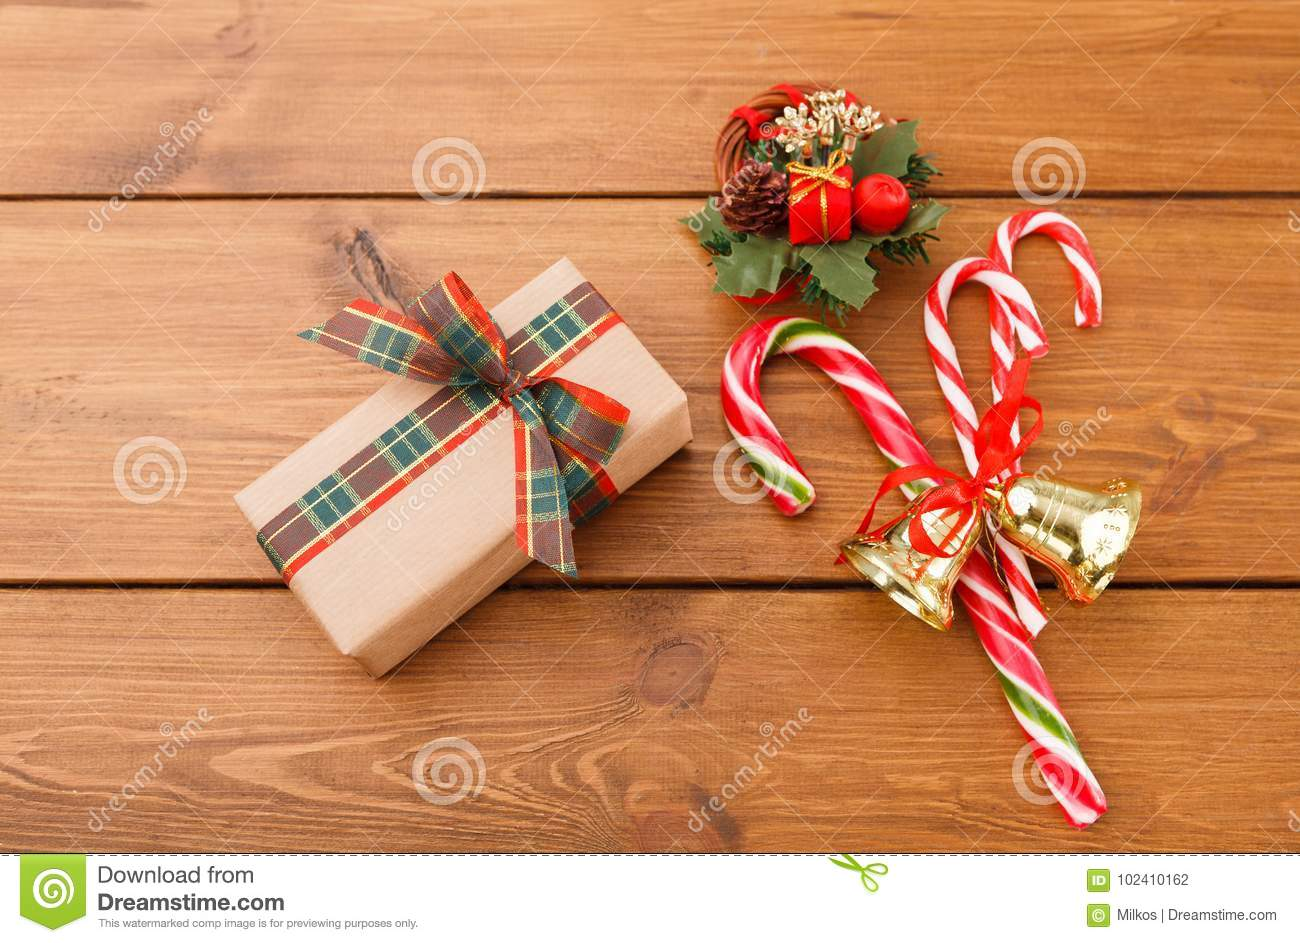 Christmas Wreath Gift Box In Craft Paper And Xmas Candy On Rustic Wood Background Stock Photo Image Of Christmas Star 102410162